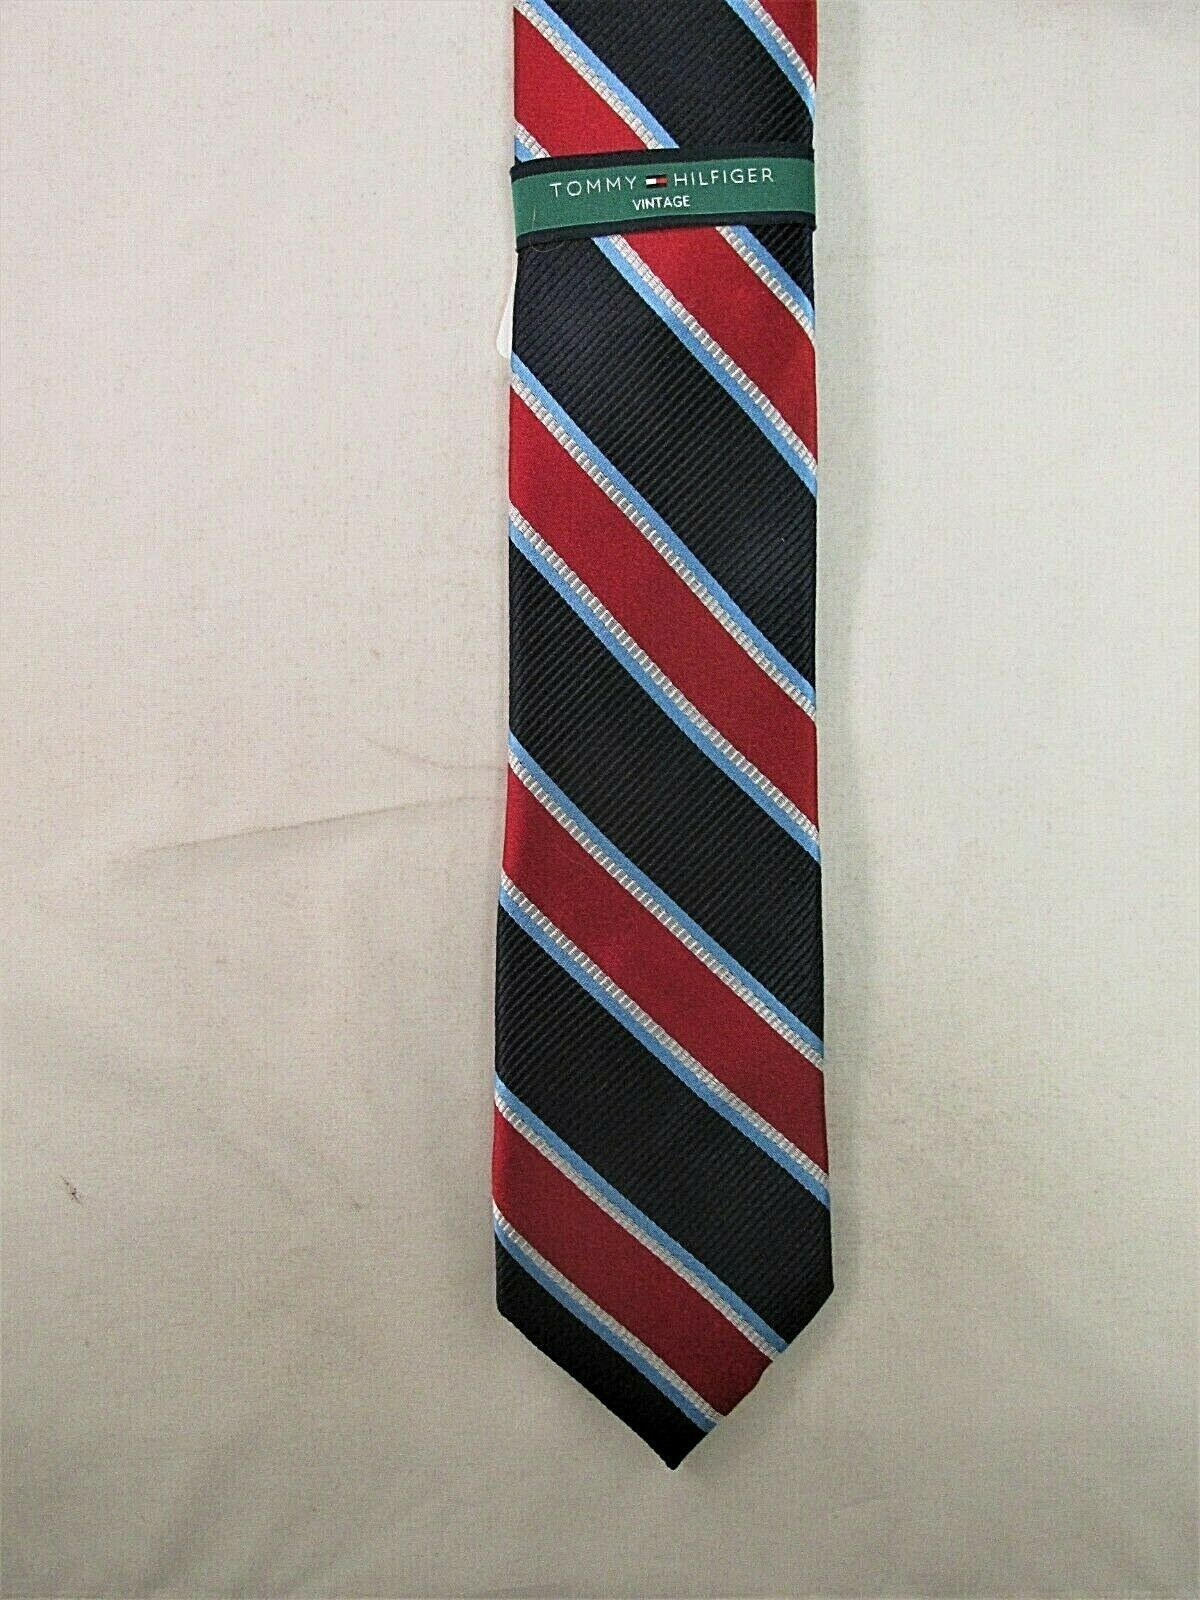 Primary image for Tommy Hilfiger Men's (NWT) Silk Tie